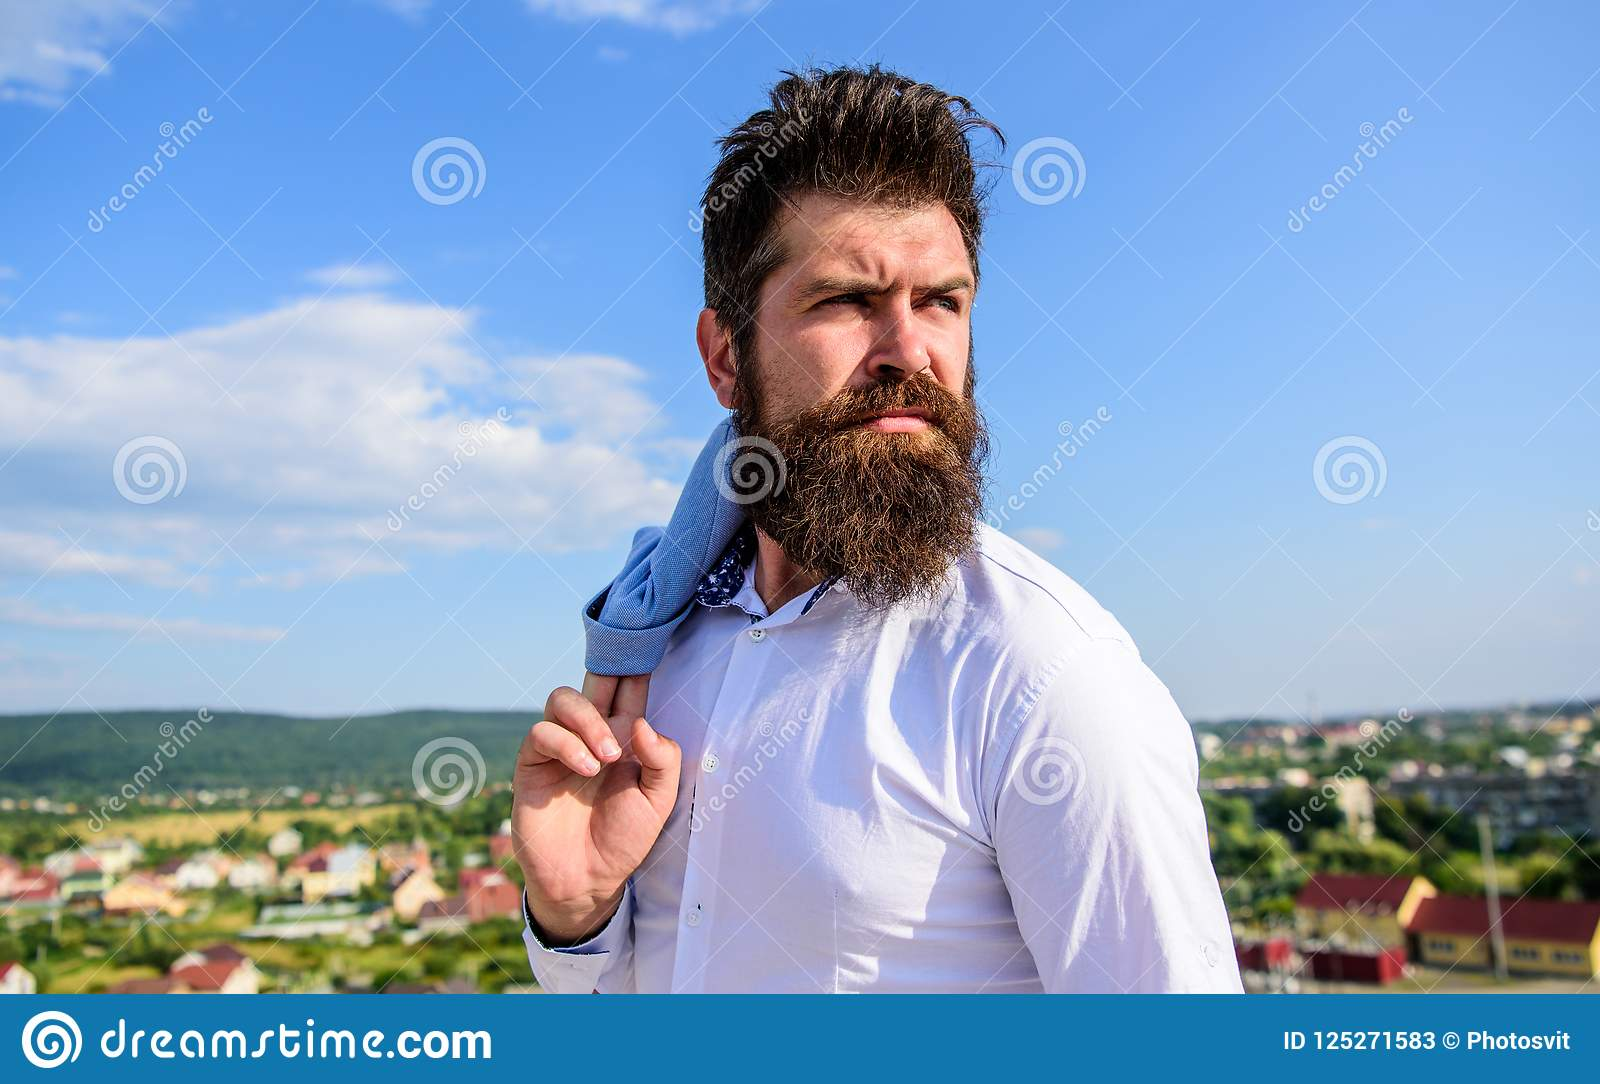 Guy reached top but feel frustrated. Motivation and ambitions concept. Hipster beard mustache looks puzzled frustrated